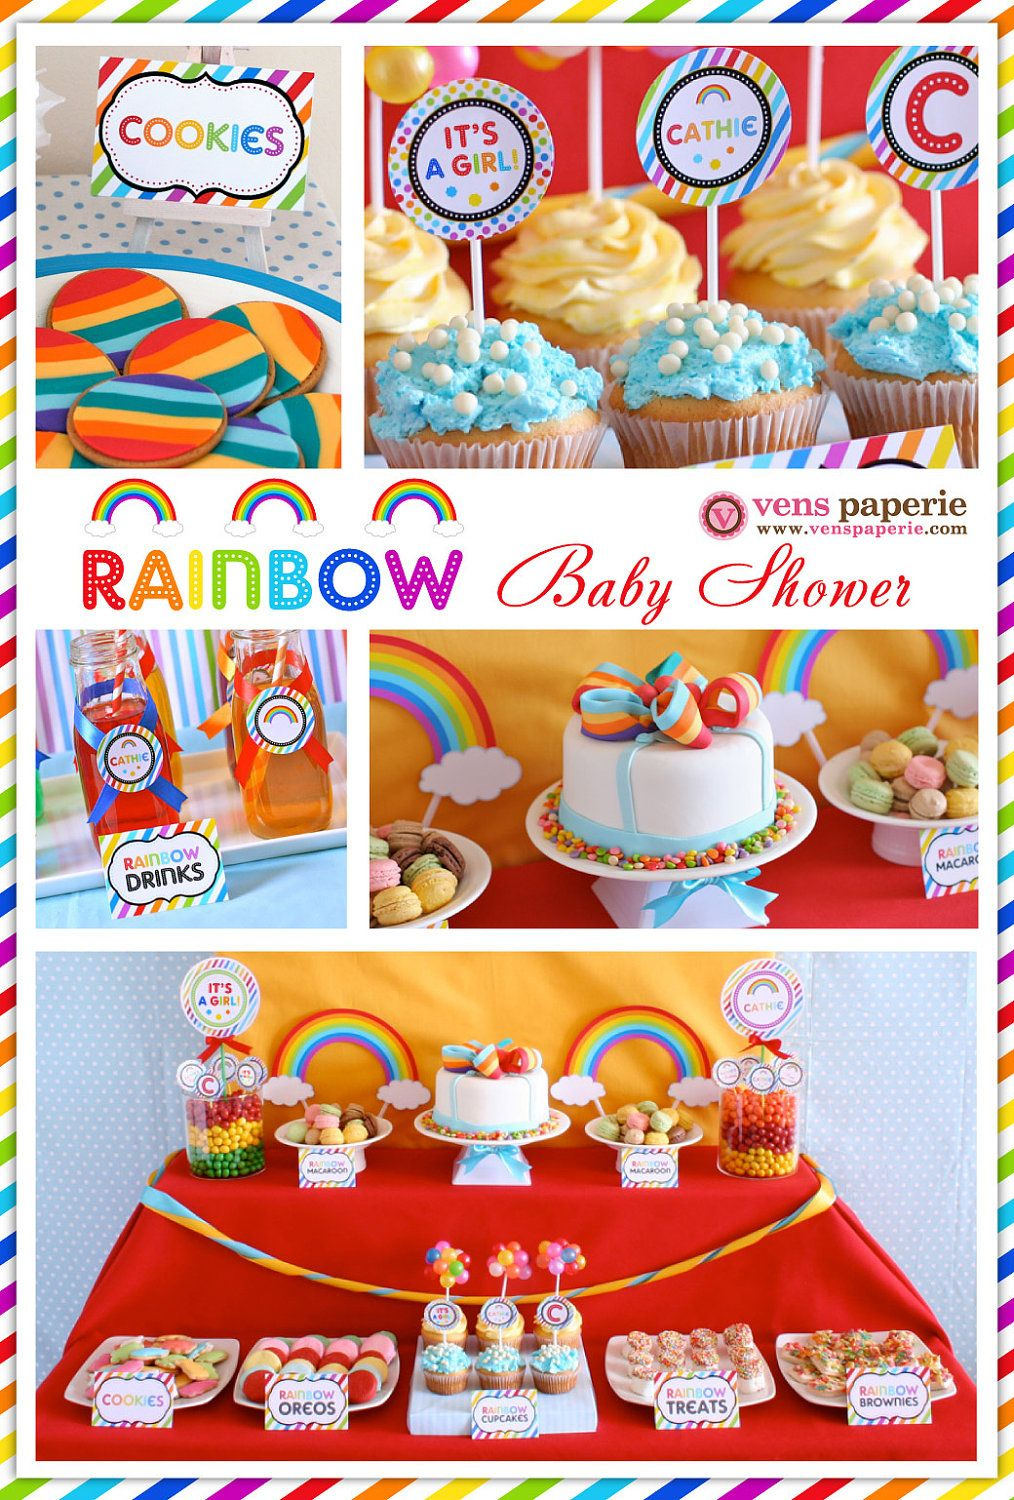 Rainbow Baby Shower Package Personalized FULL Collection Set   PRINTABLE  DIY   BS808x. $35.00,